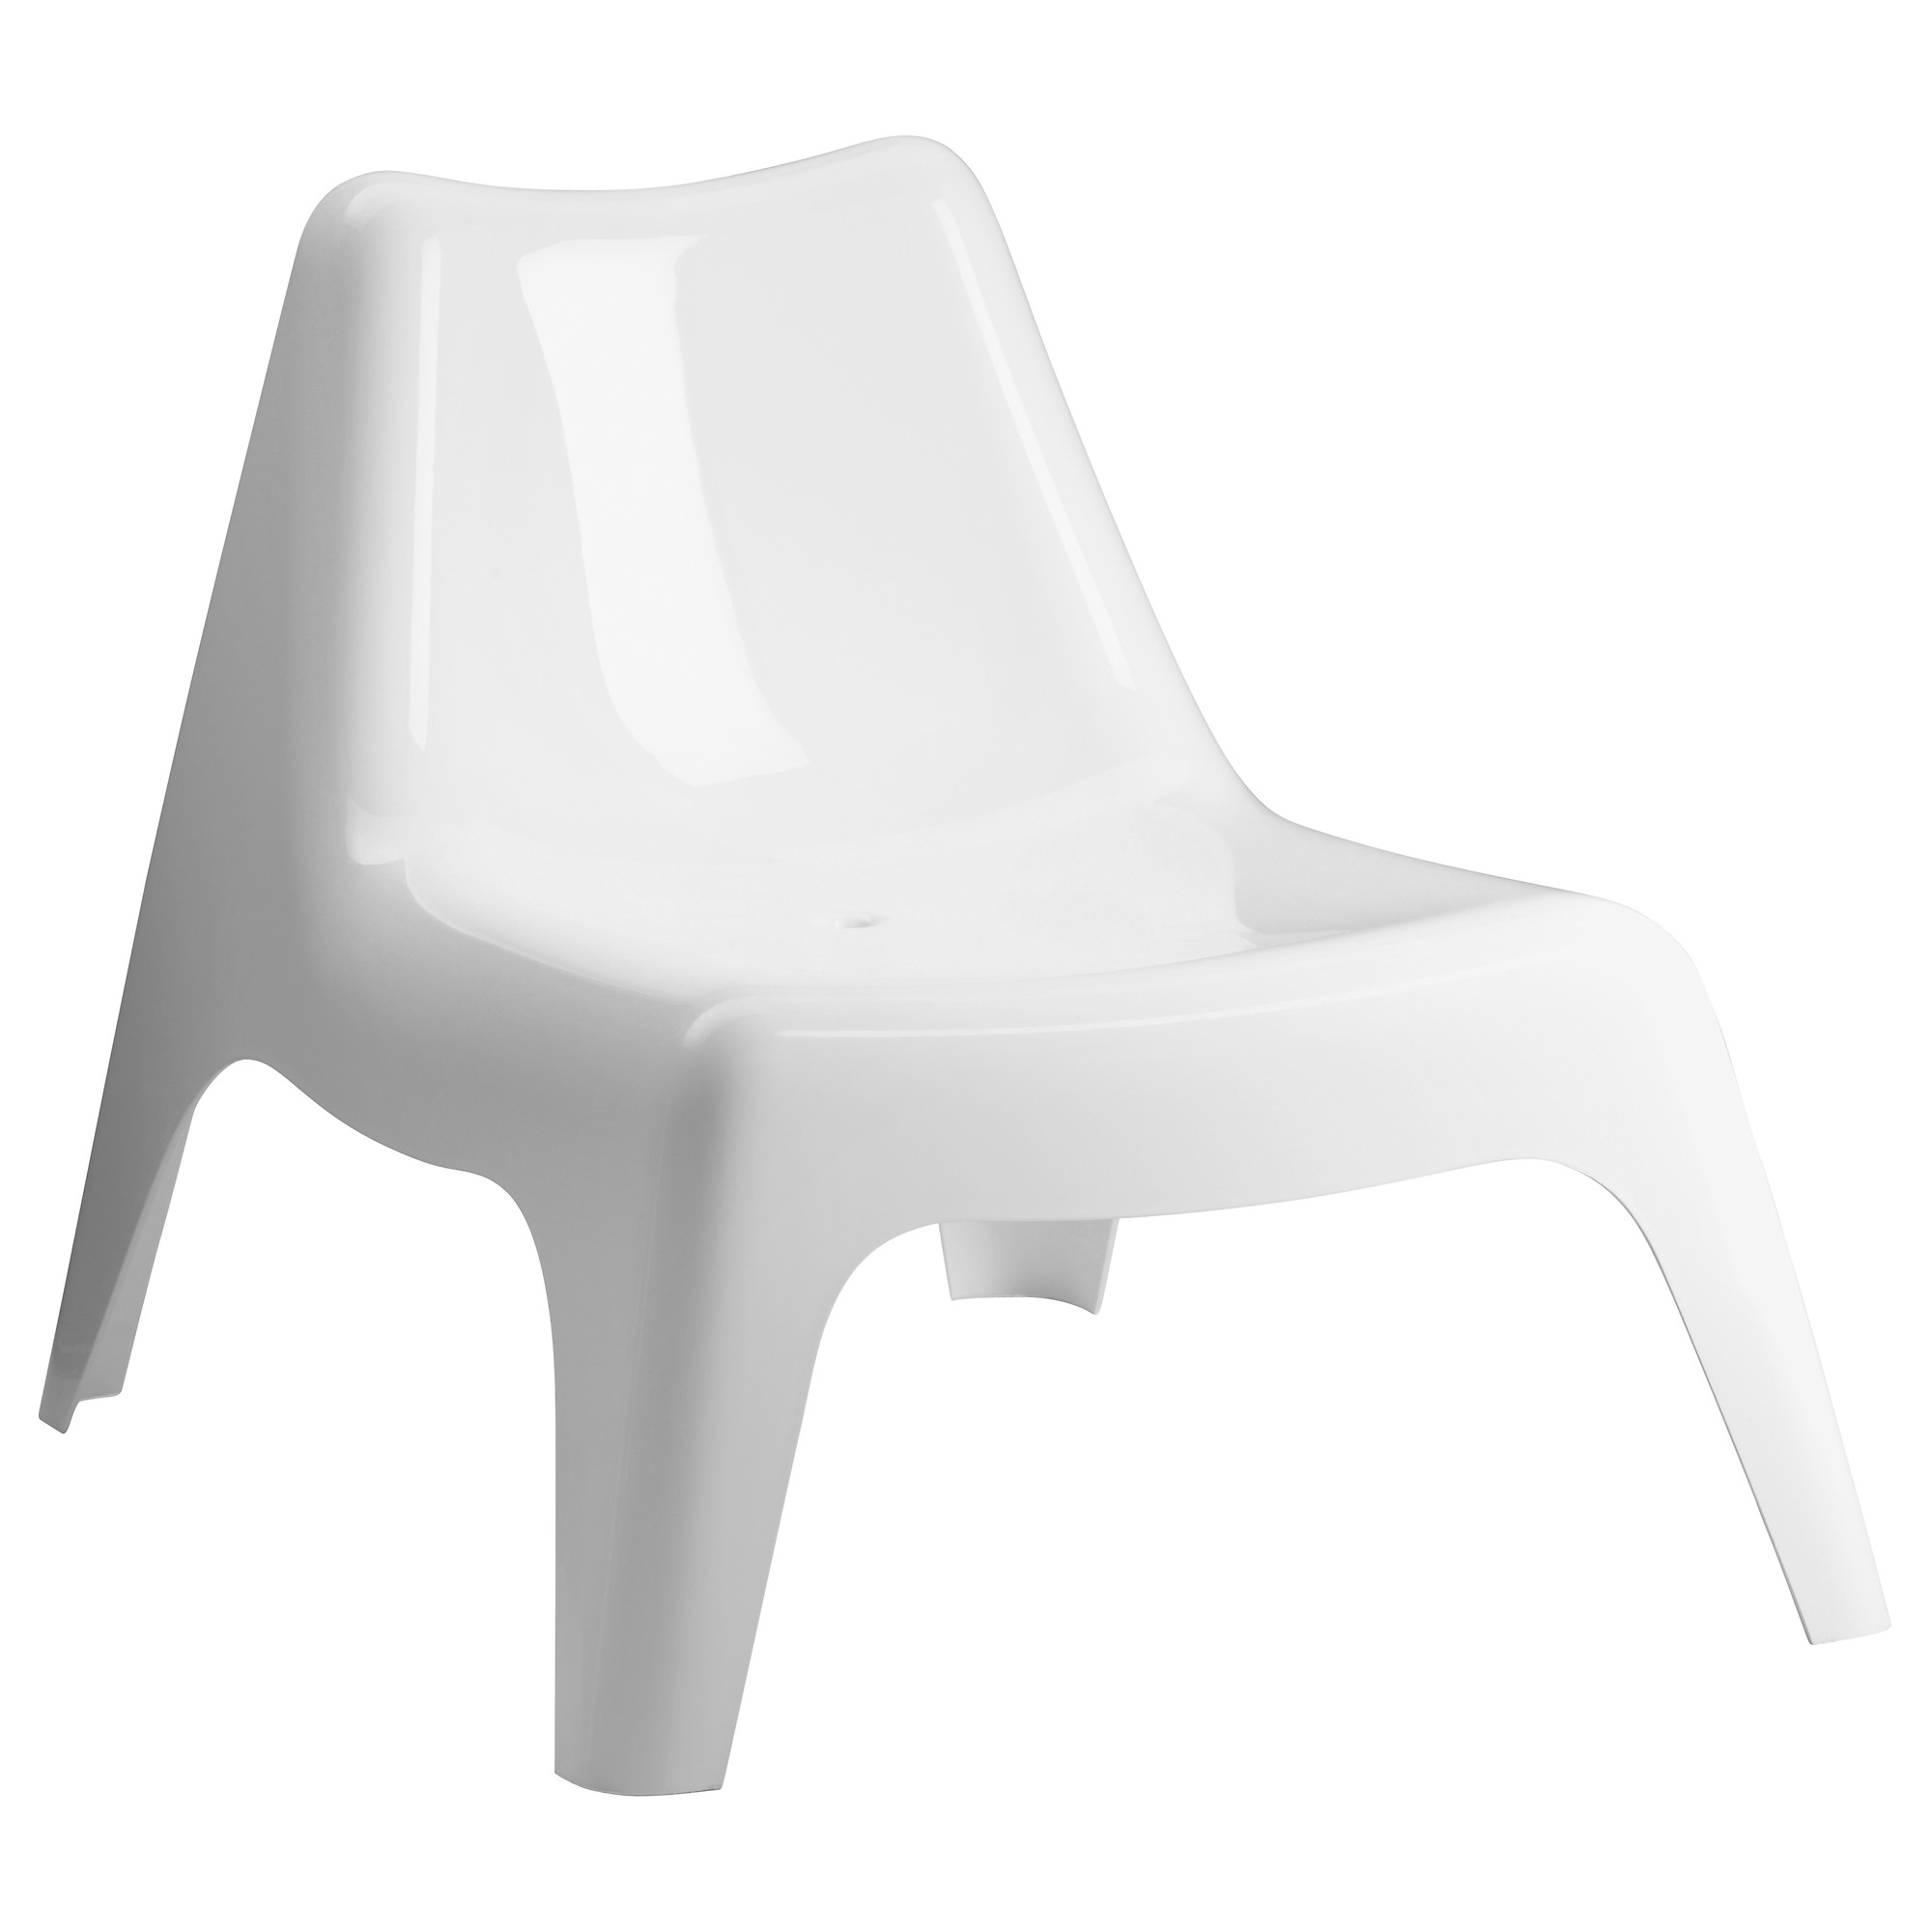 Newest Outdoor Ikea Chaise Lounge Chairs For Ikea Ps Vågö Chair, Outdoor – White – Ikea (View 10 of 15)